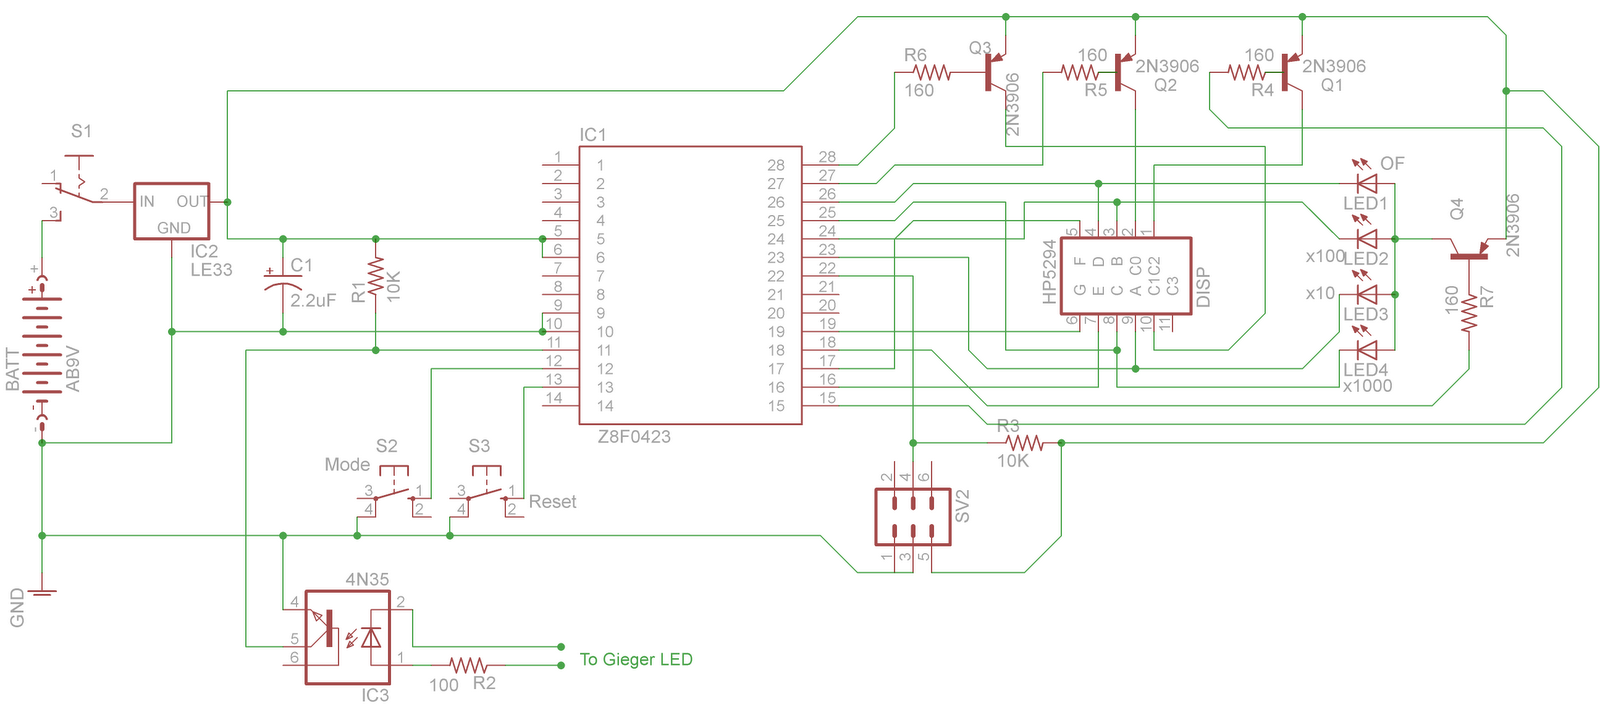 Deepaks Microcontroller Projects Zilog General 7 Segment Logic Diagram The Optocoupler Is Connected To Pin 11 Of With A Pull Up Resistor Used Ensure That There Proper